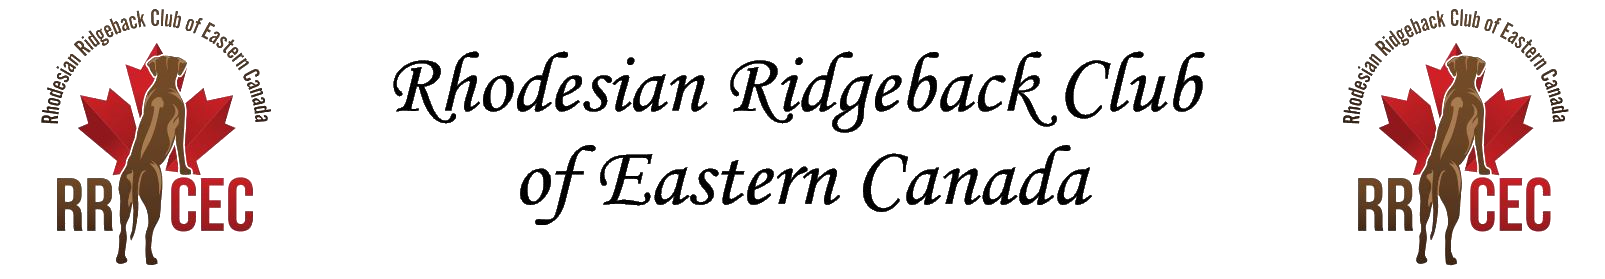 Rhodesian Ridgeback Club of Eastern Canada